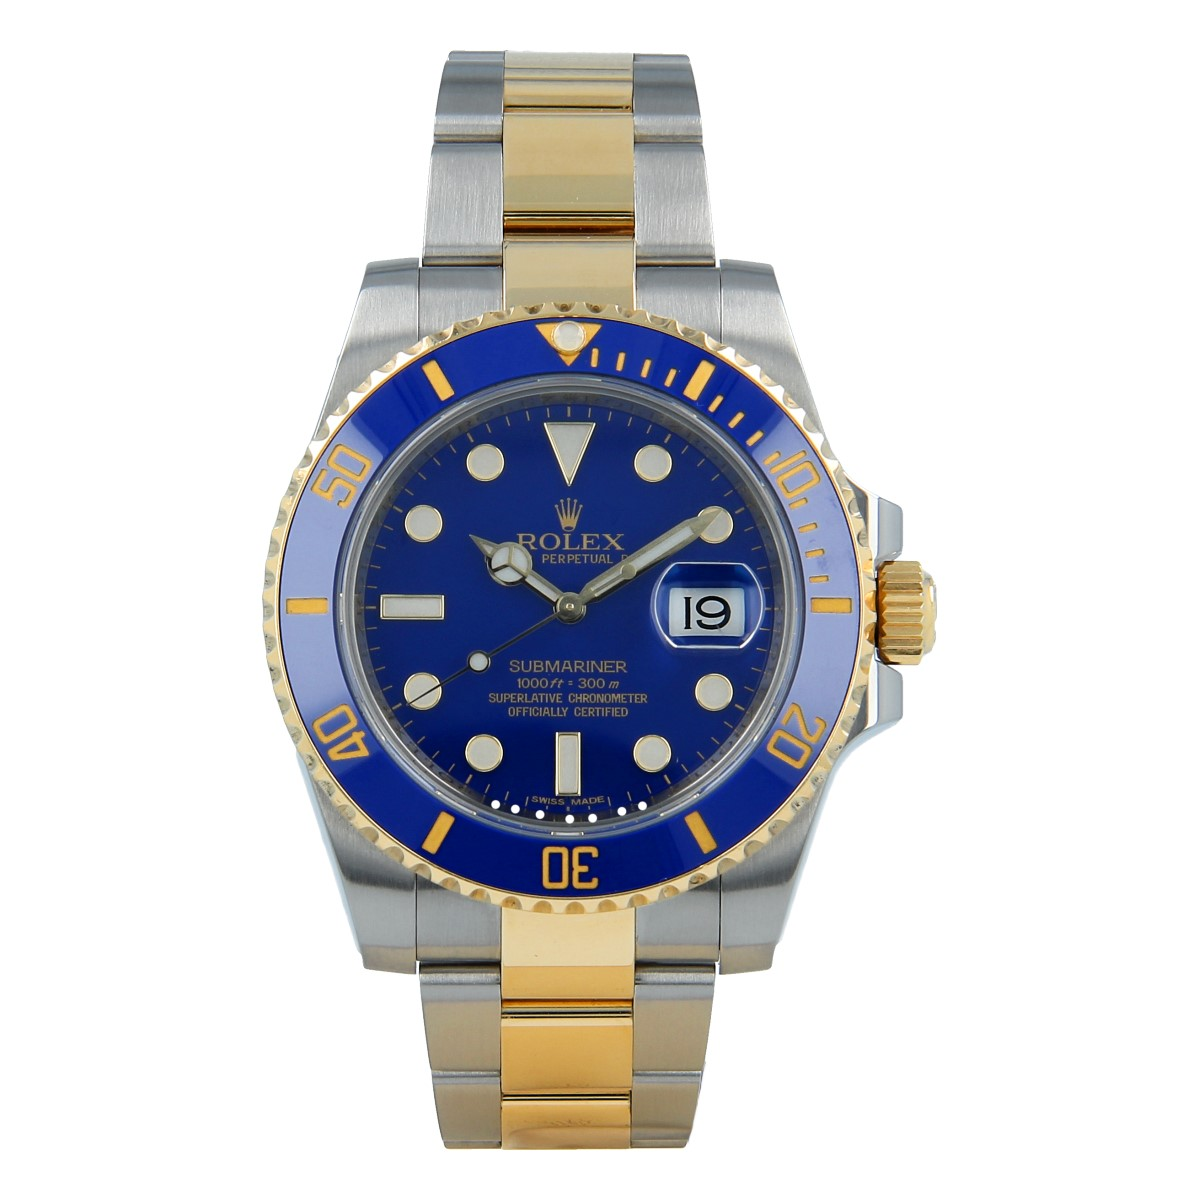 Rolex Submariner Date 116613LB Steel and Yellow Gold | Buy second-hand Rolex watch